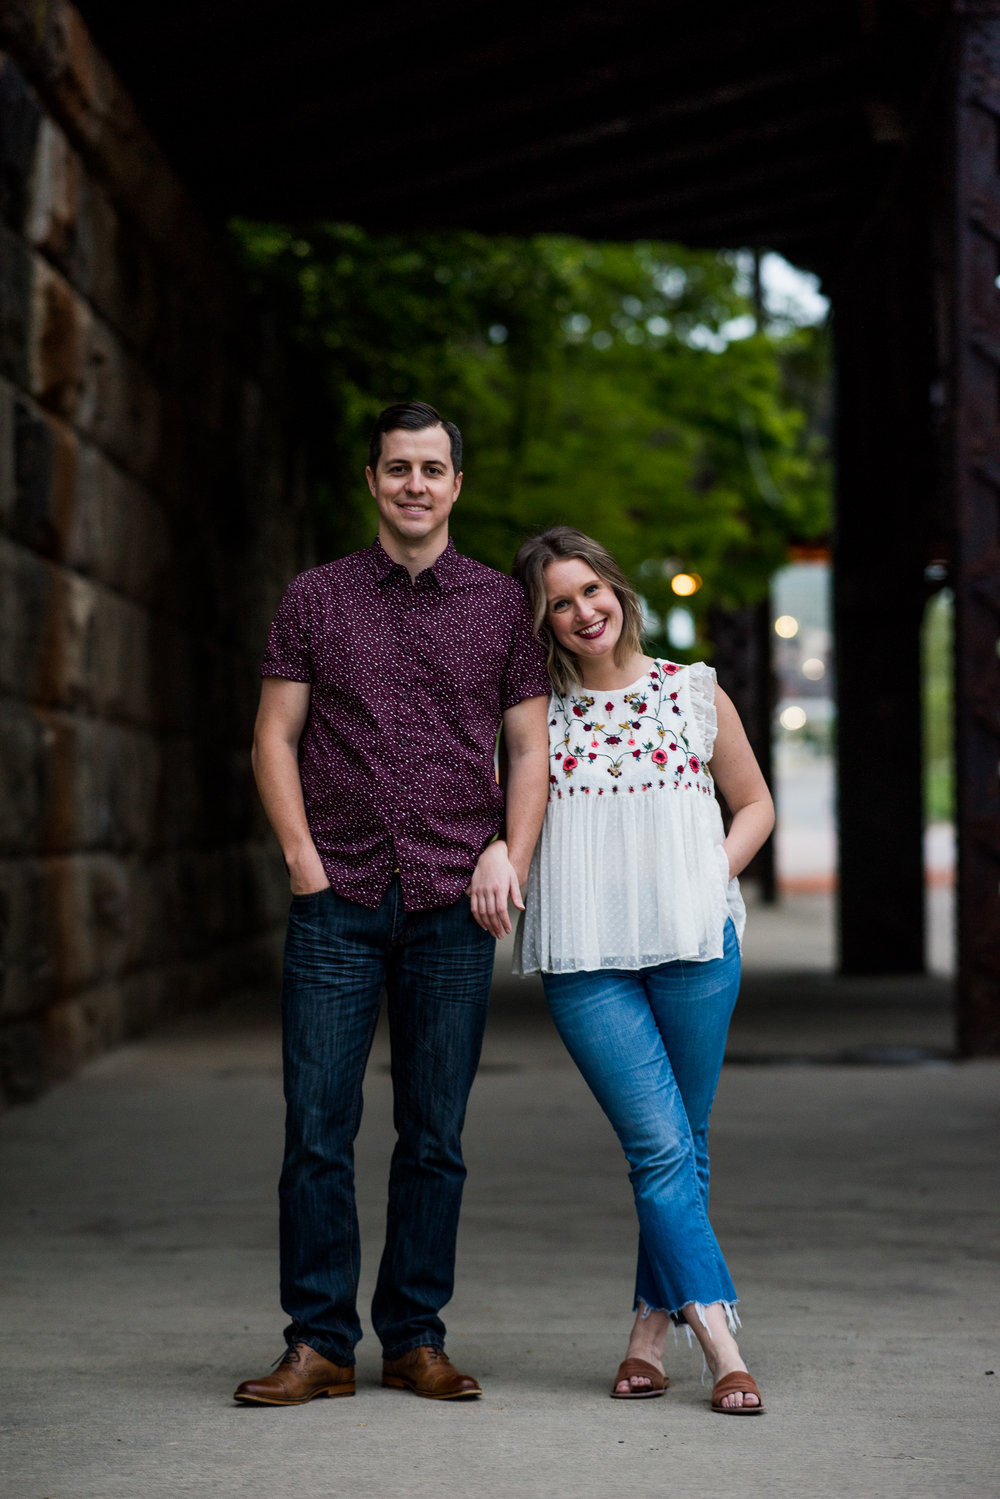 SARAH+MATT ENGAGED PREVIEWS